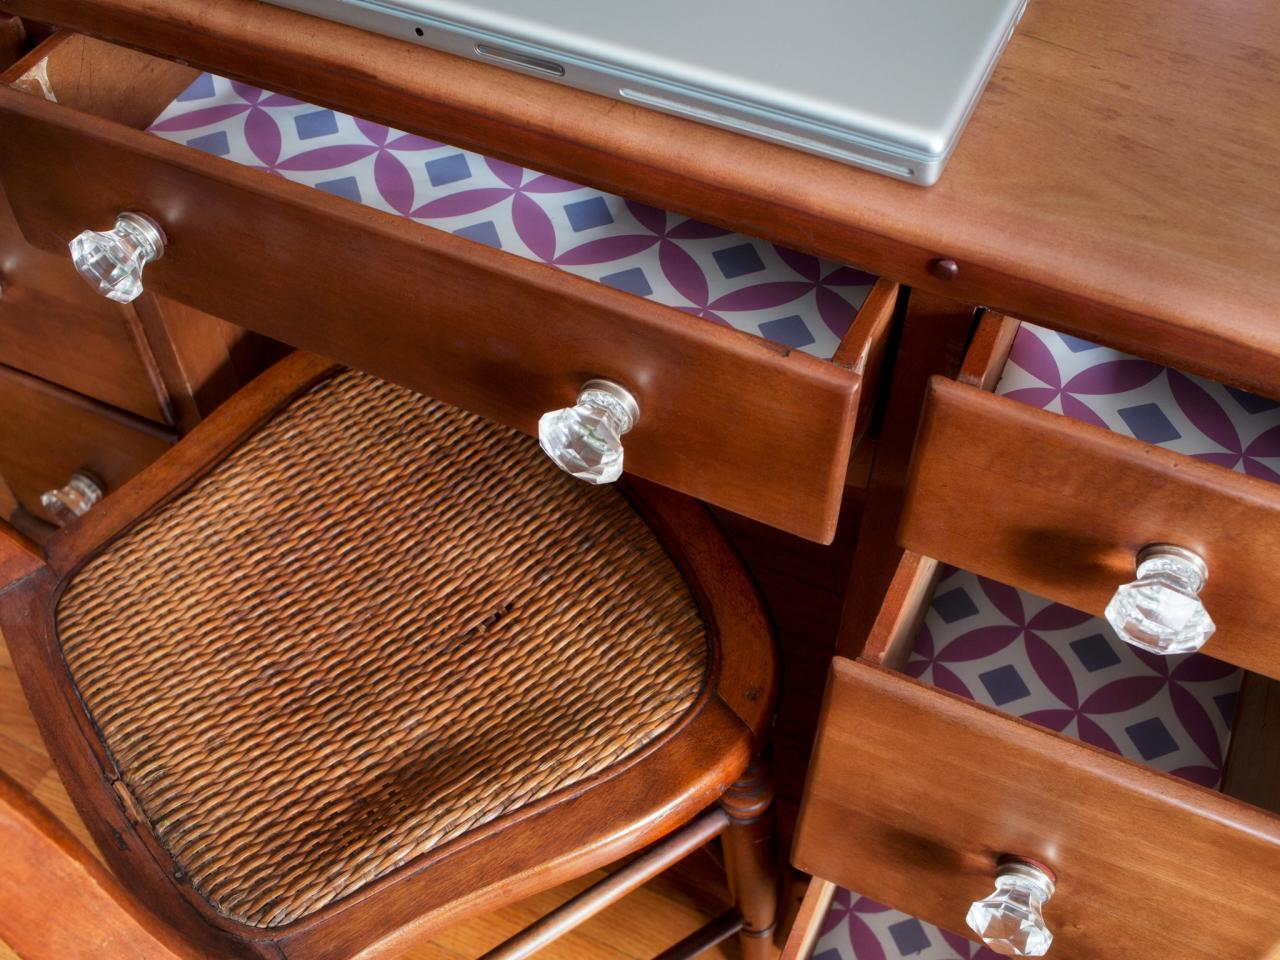 How to Update a Dresser With Wallpaper and Decorative Knobs HGTV 1280x960